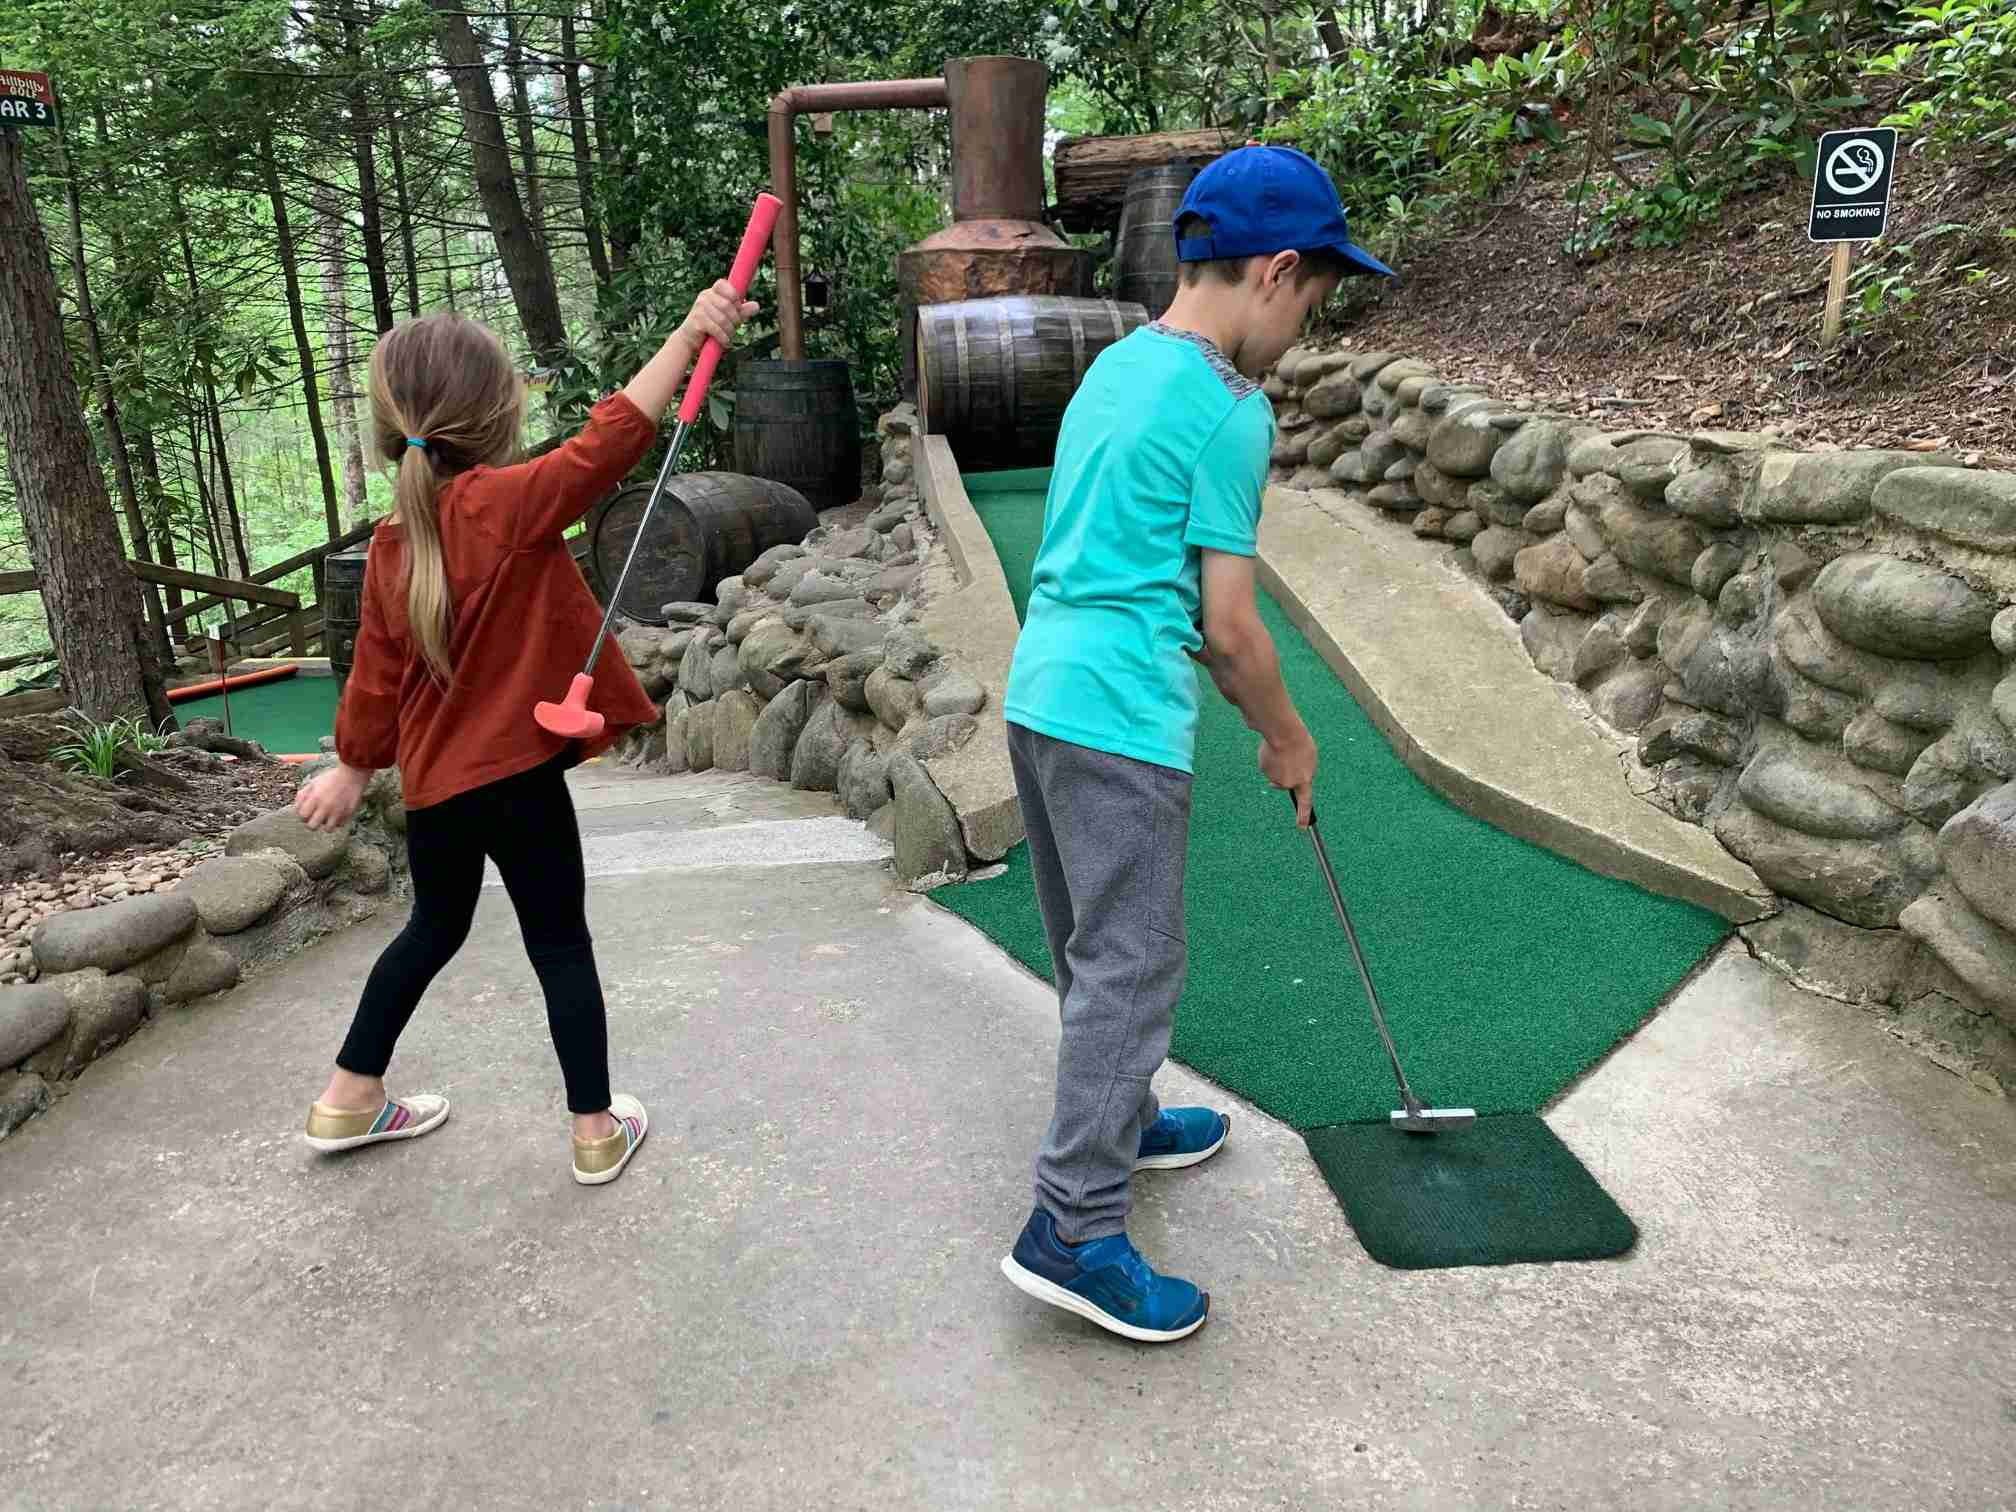 Hillbilly Golf Gatlinburg TN putting Timothy and Scarlett